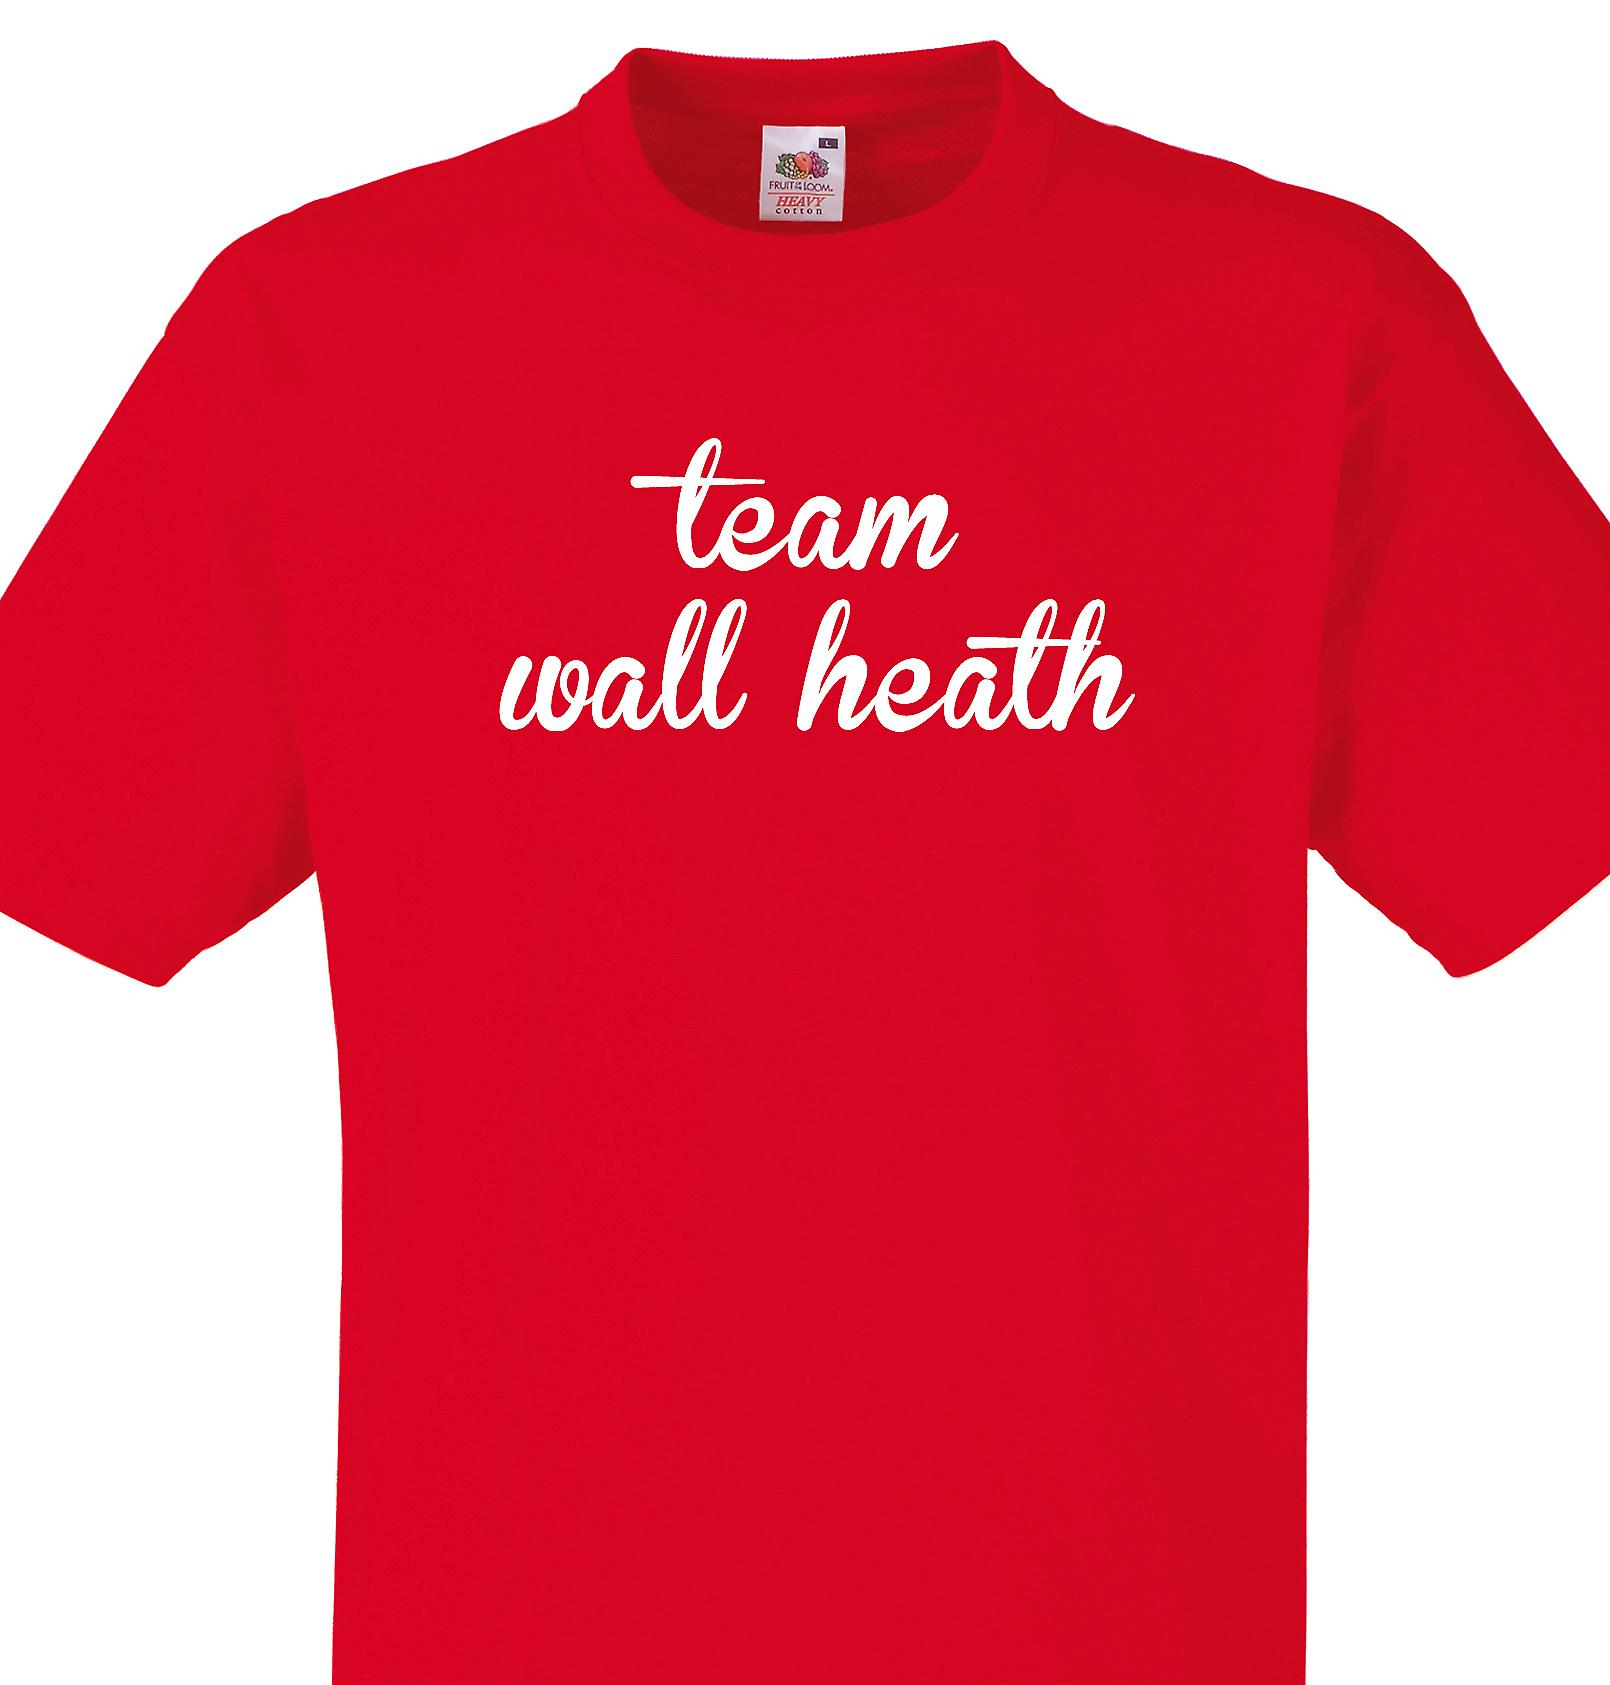 Team Wall heath Red T shirt